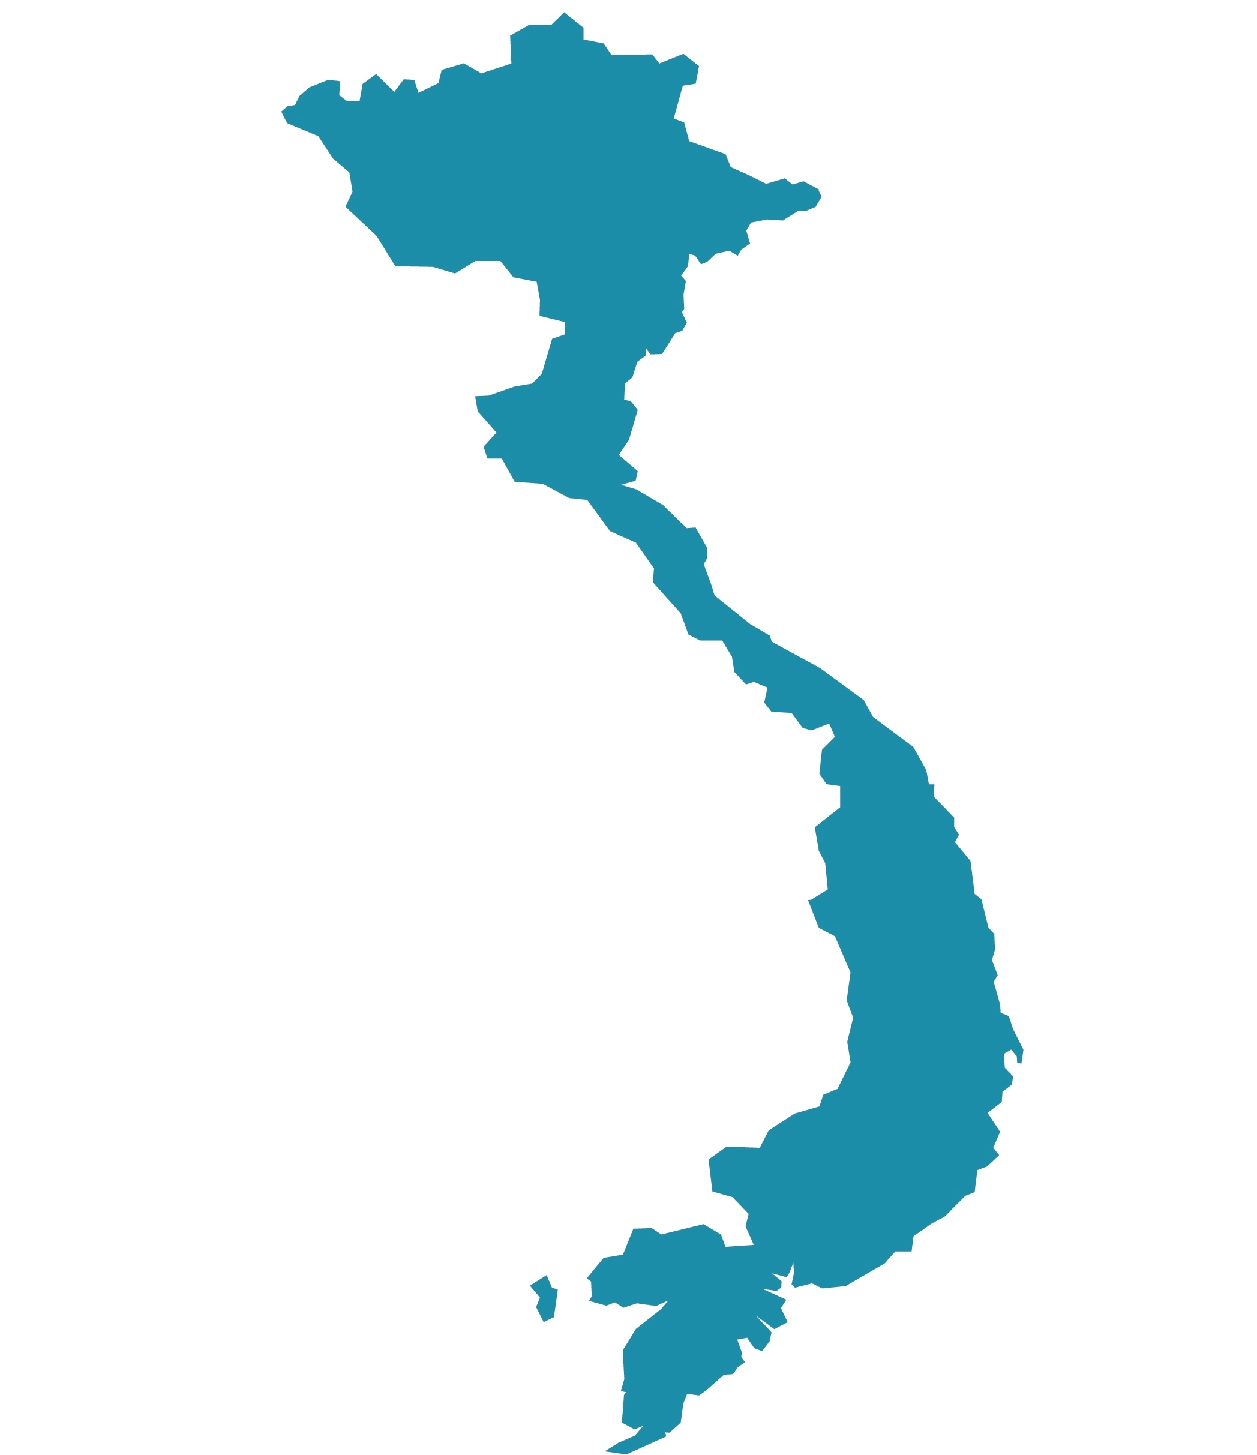 Vietnam Map Figure_Artifact for COUNTRY Research Page-11-01.jpg